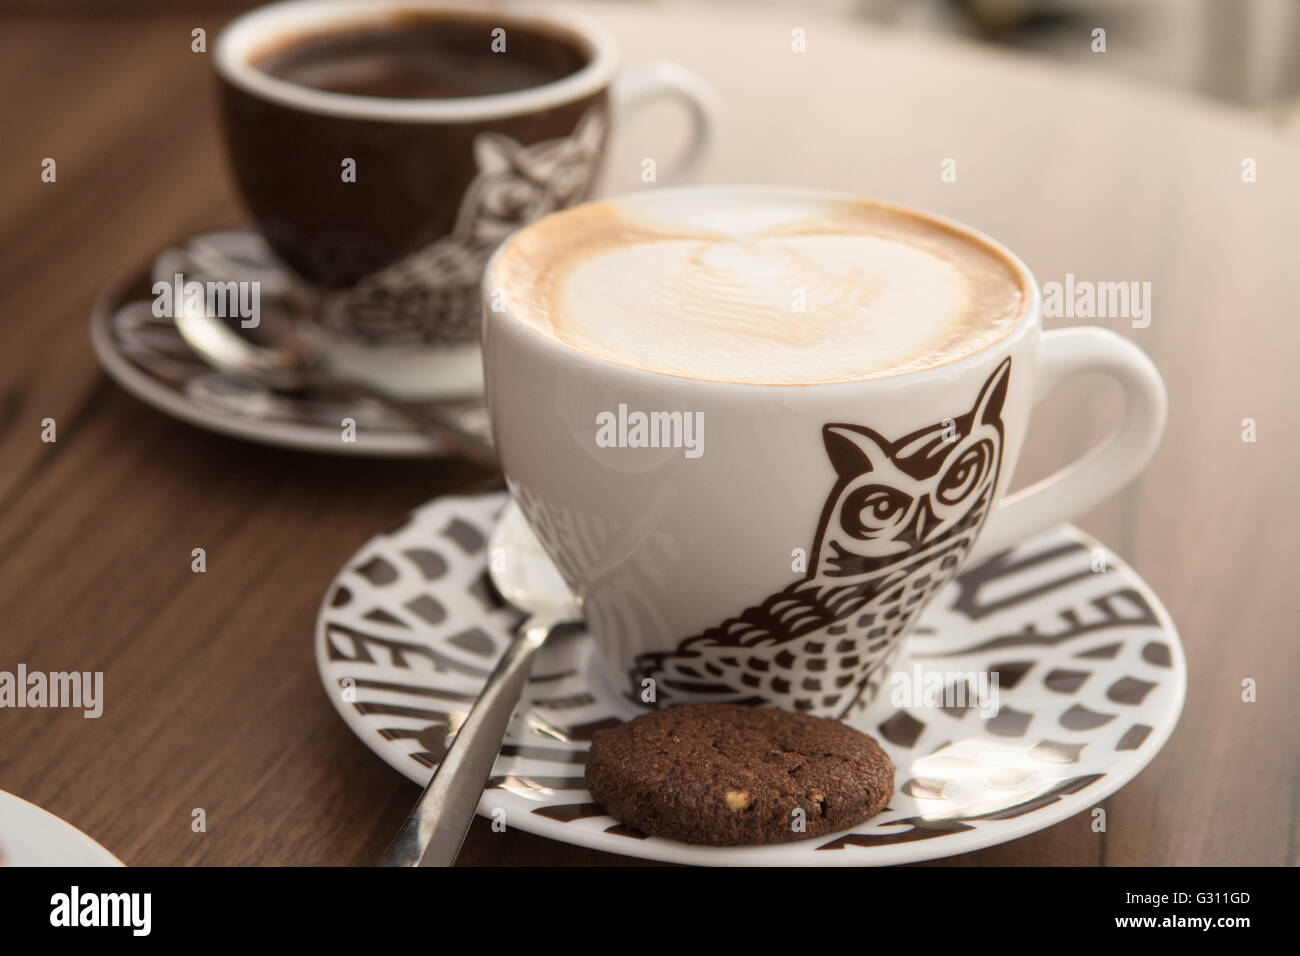 cappuccino and hot chocolate from Cukiernia Sowa coffee shop on Long Street in the heart of Gdansk, Poland Stock Photo